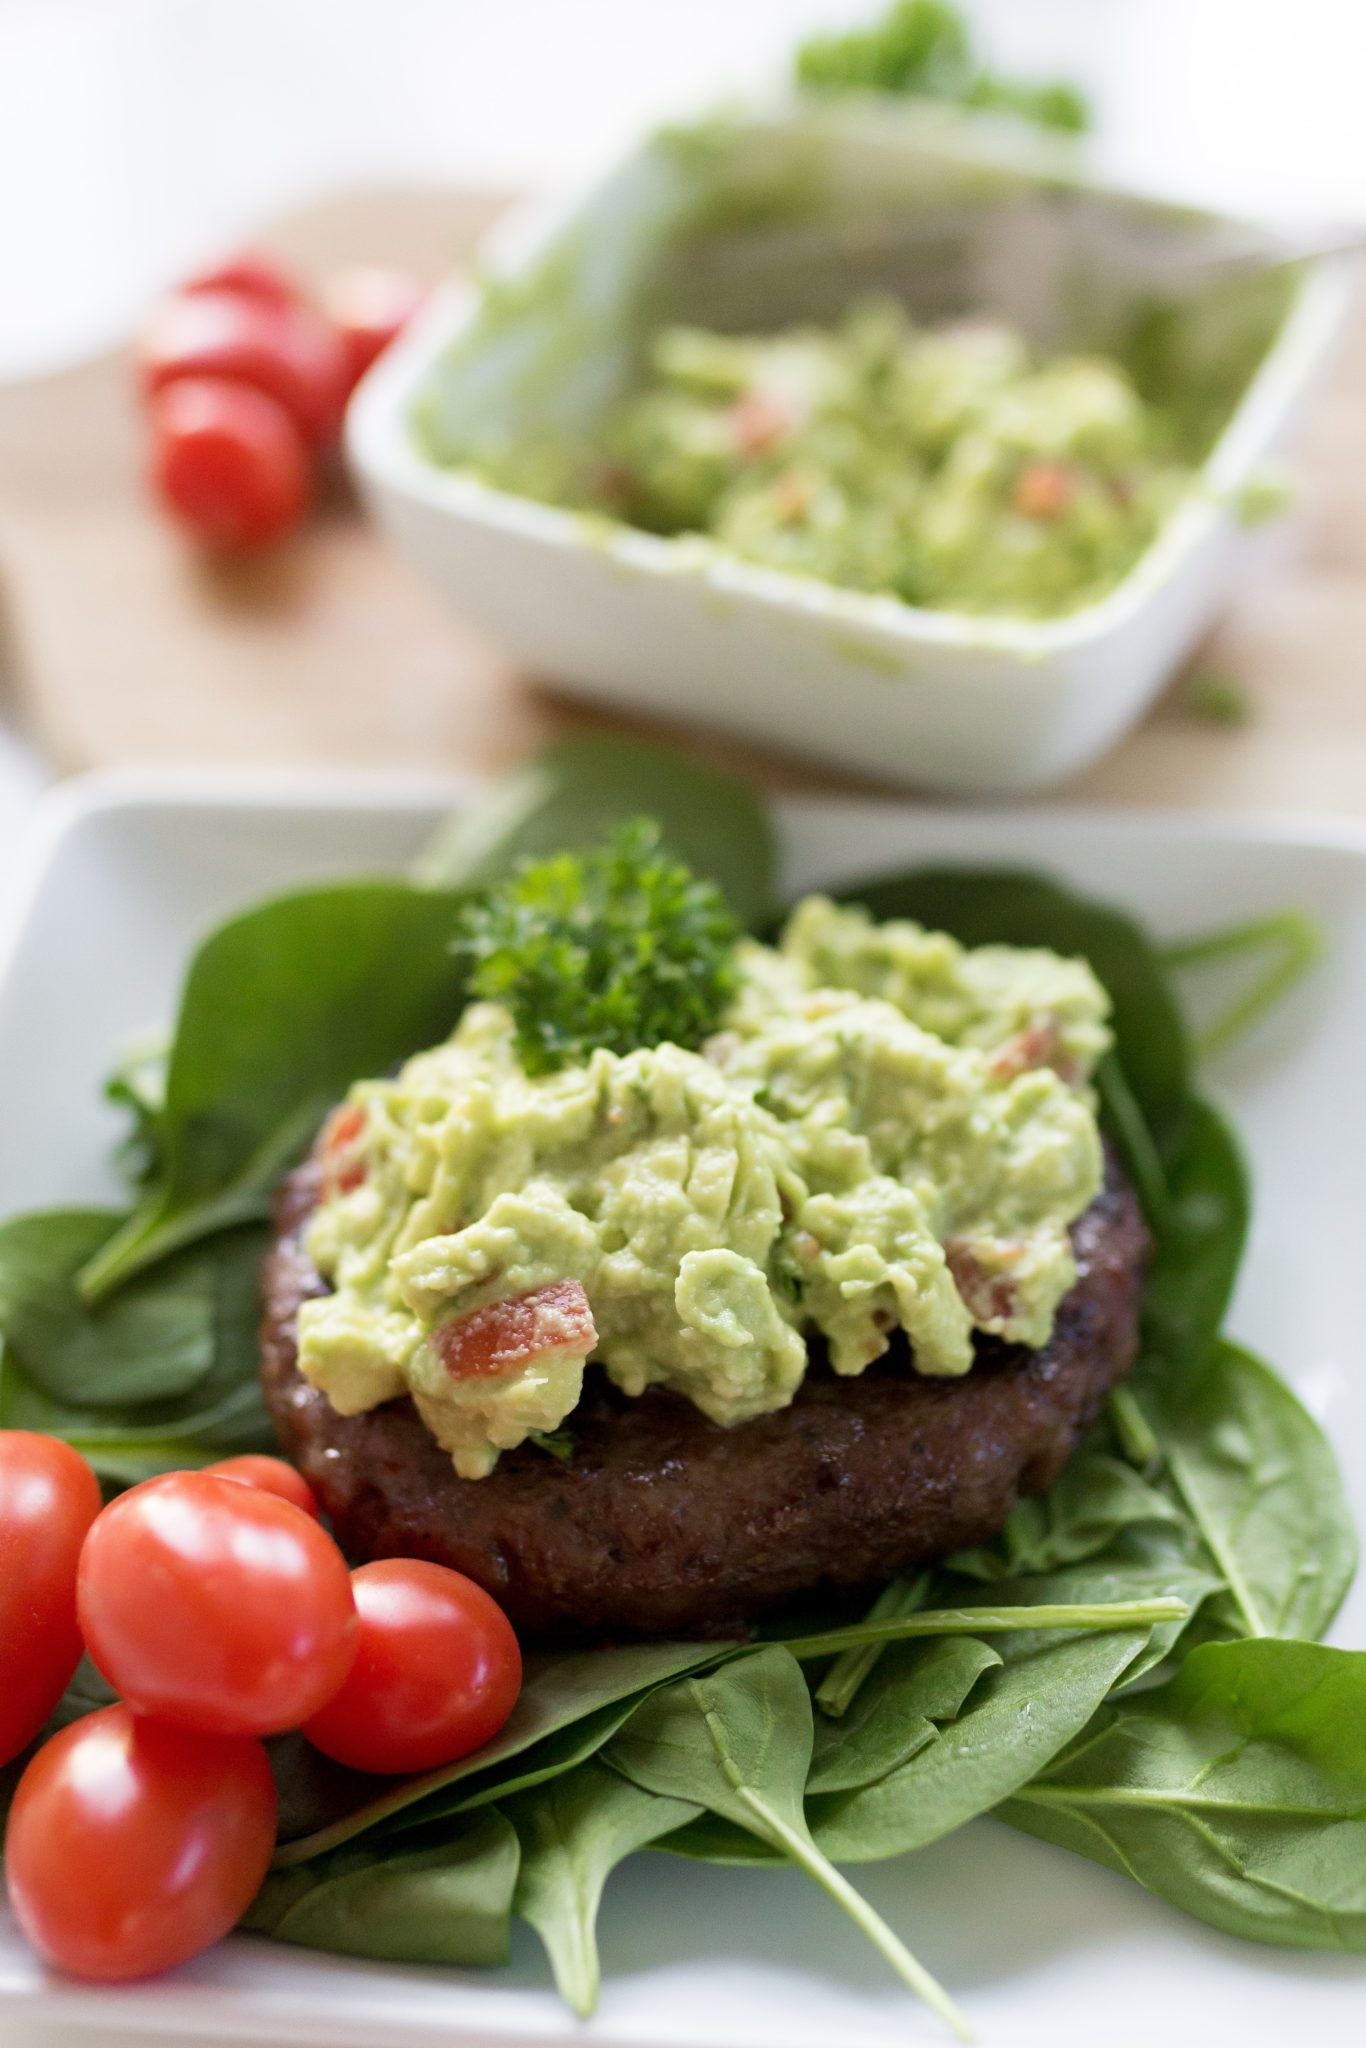 healthy guacamole burger recipe, guacamole recip, healthy guacamole meals, guacamole burger